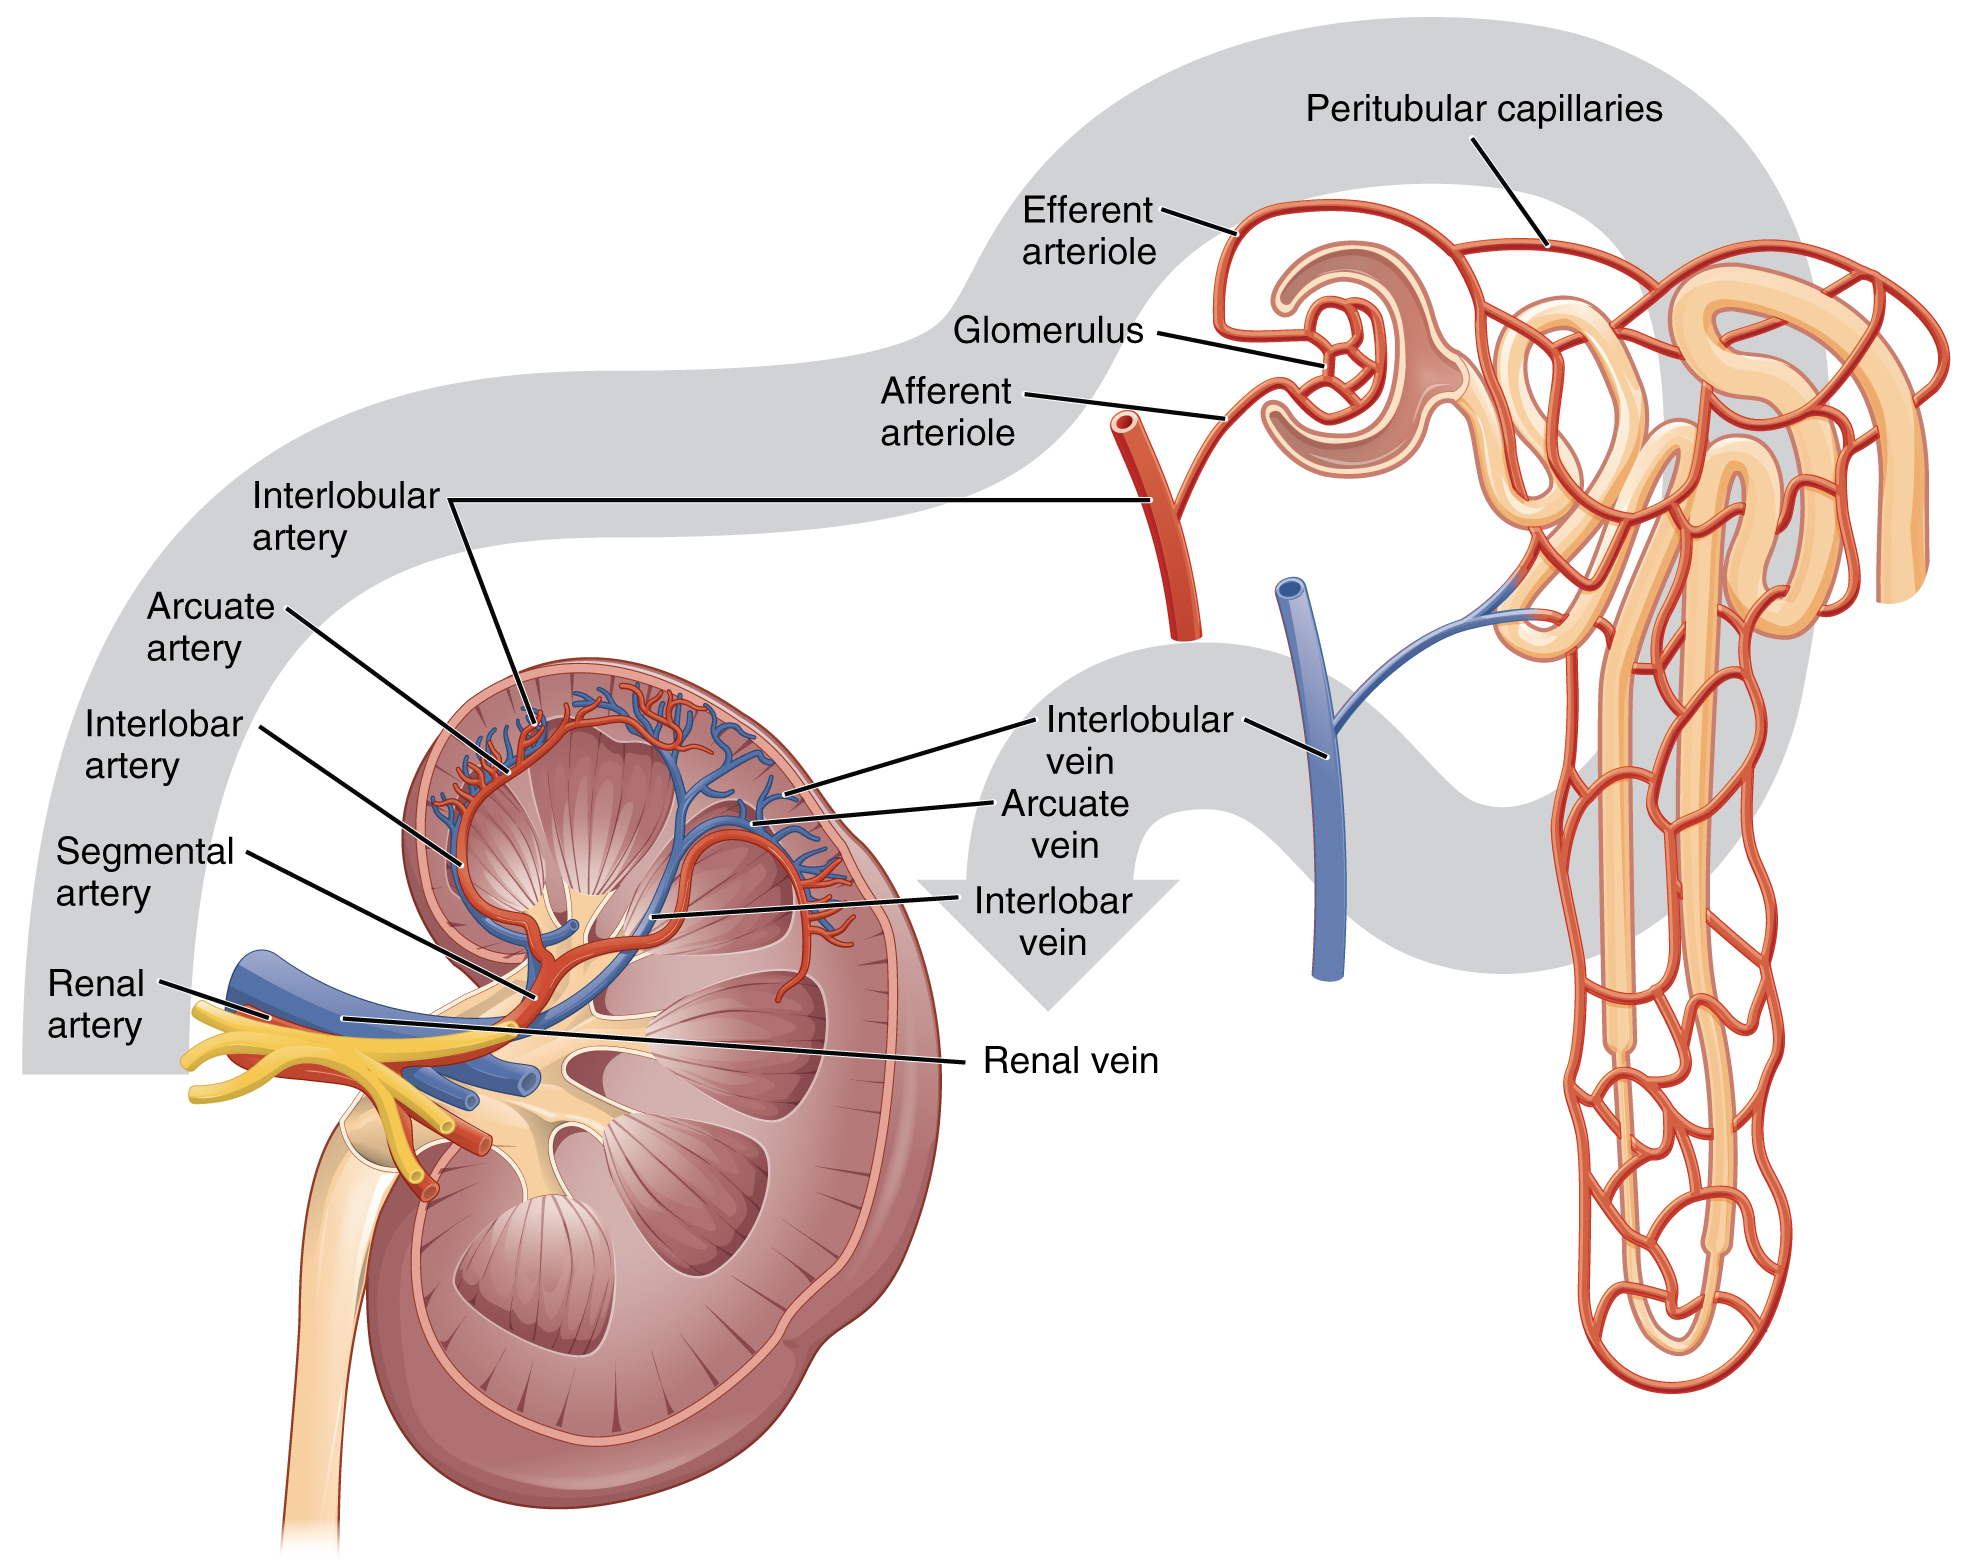 Anatomy and Physiology - Gross Anatomy of the Kidney